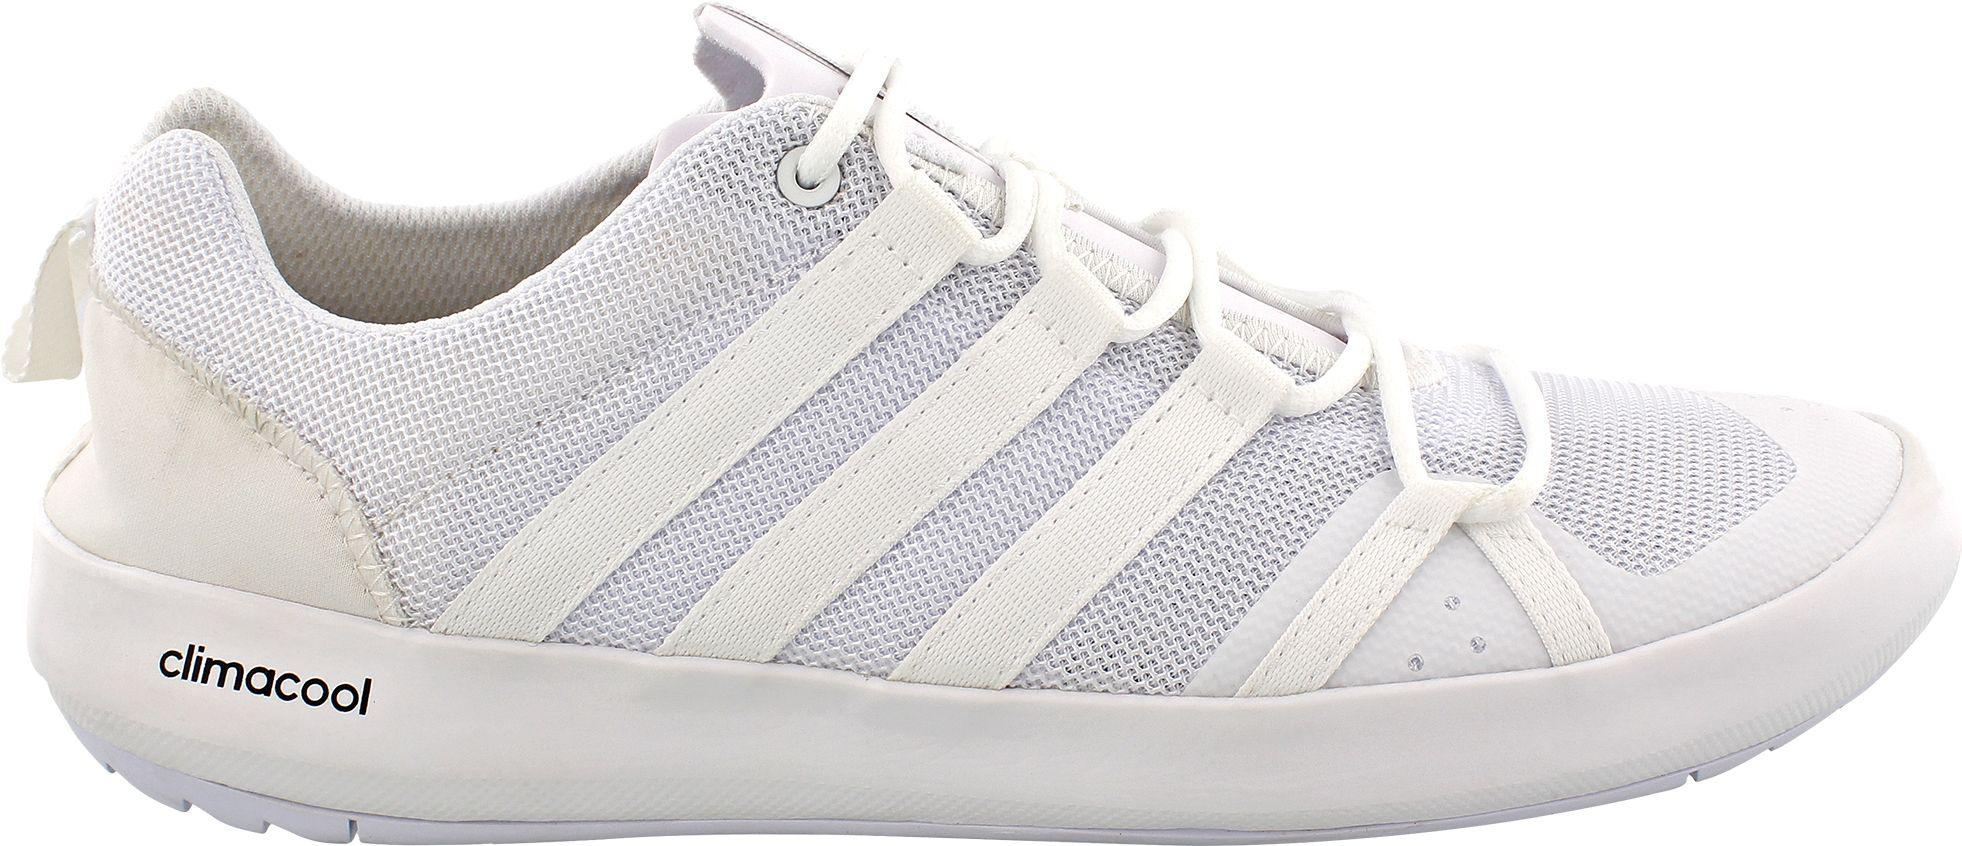 3a527cd5f2a Lyst - adidas Outdoor Terrex Climacool Boat Shoes in White for Men